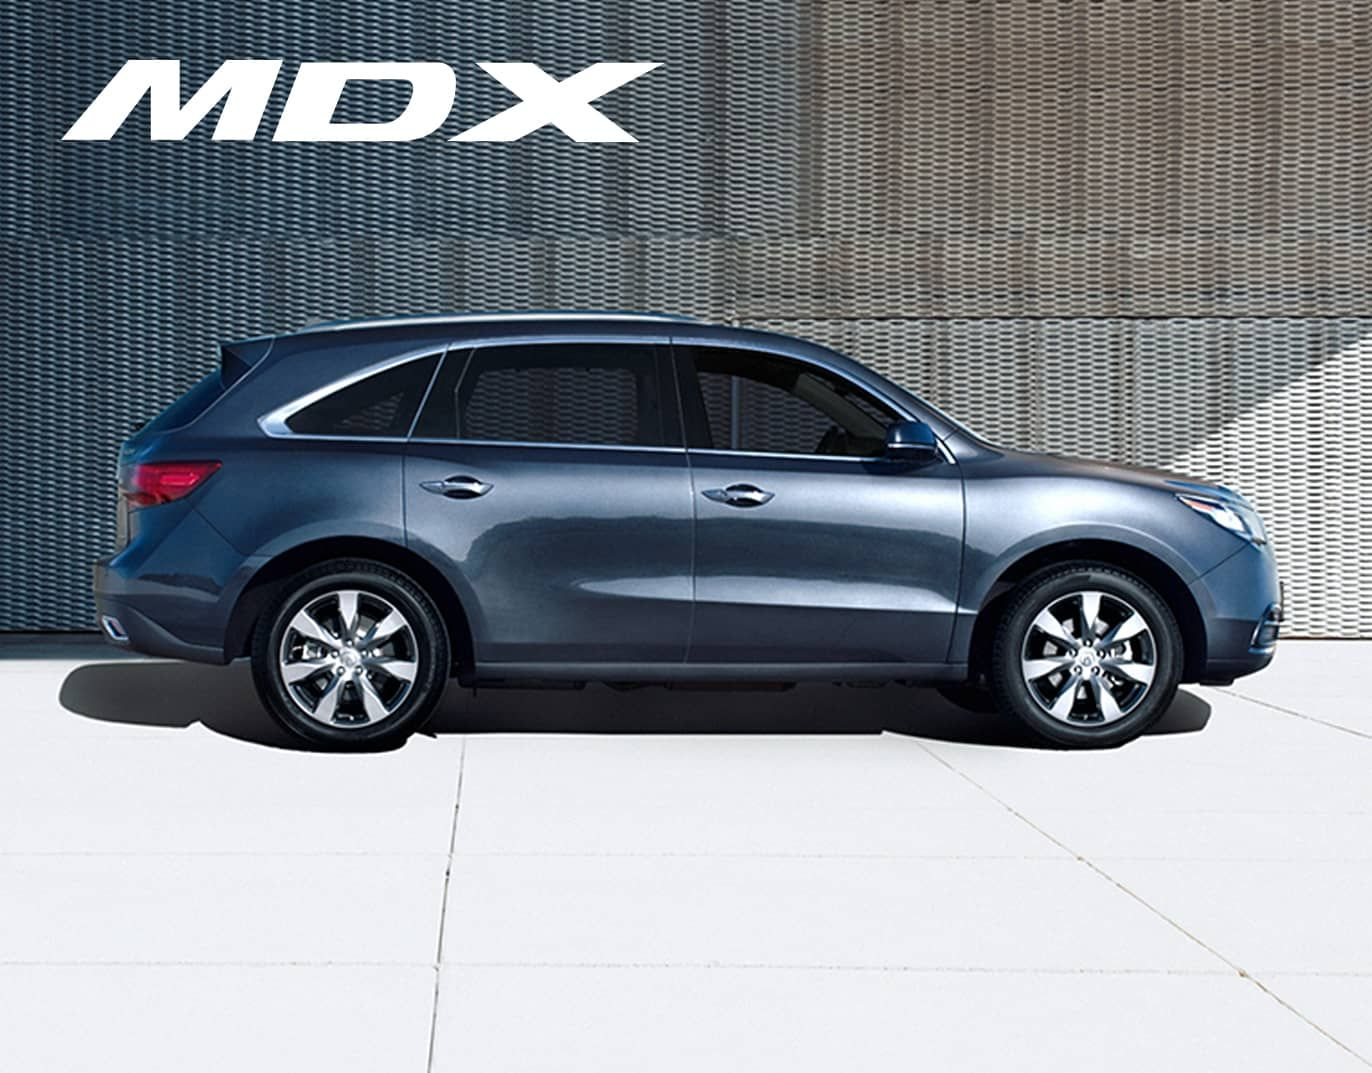 Acura Mdx Profile View With Background Luxury Profile View Car